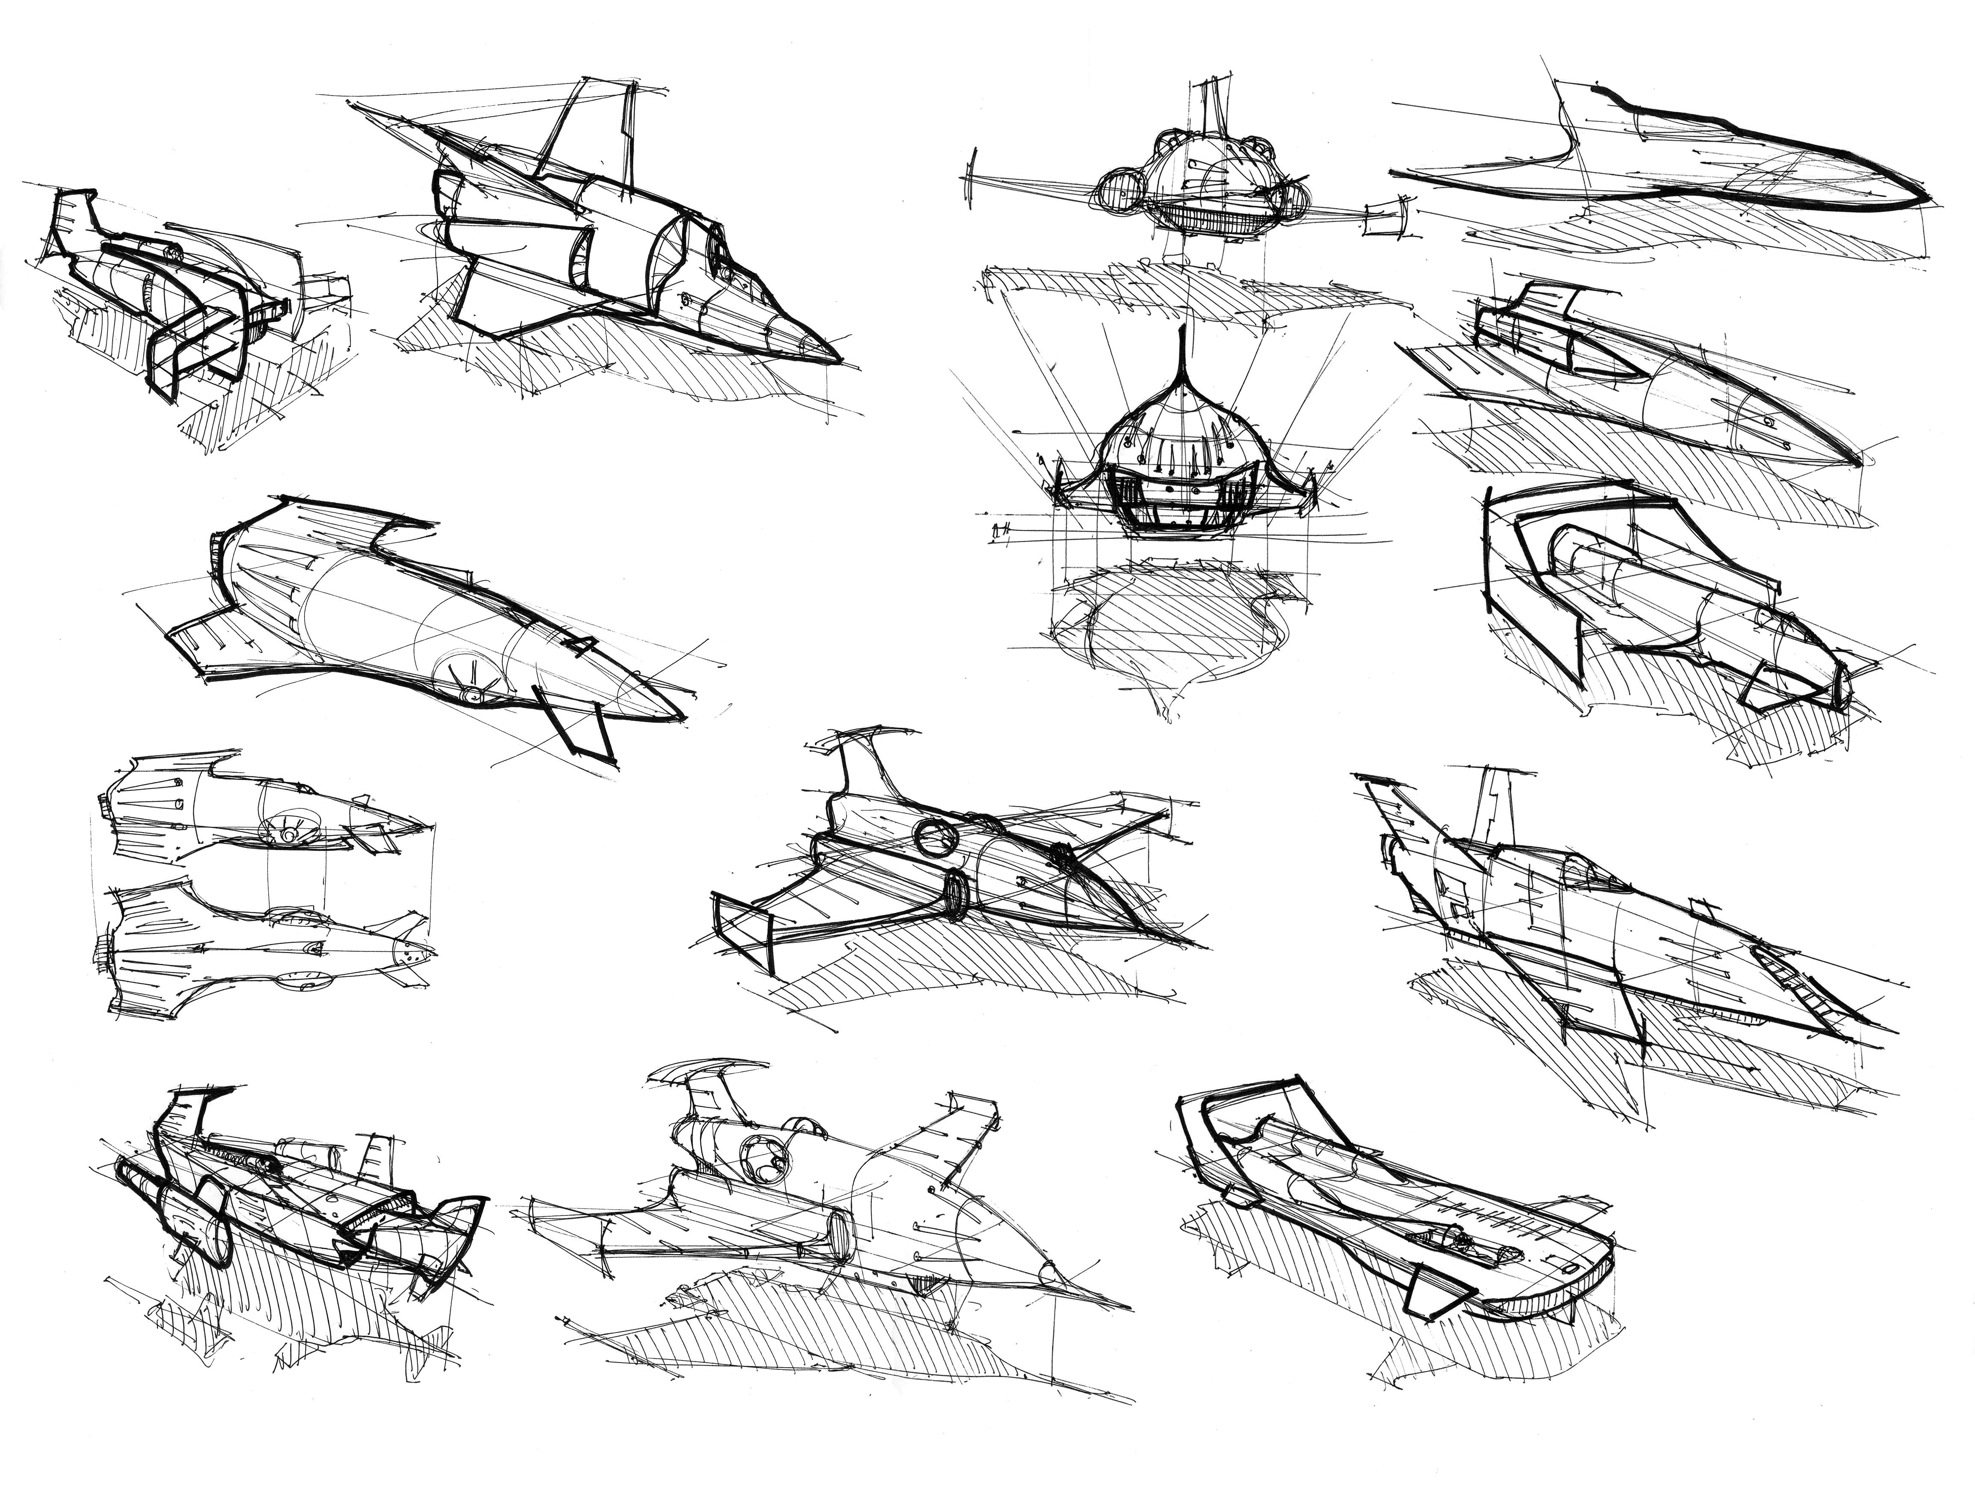 starship concepts and sketches